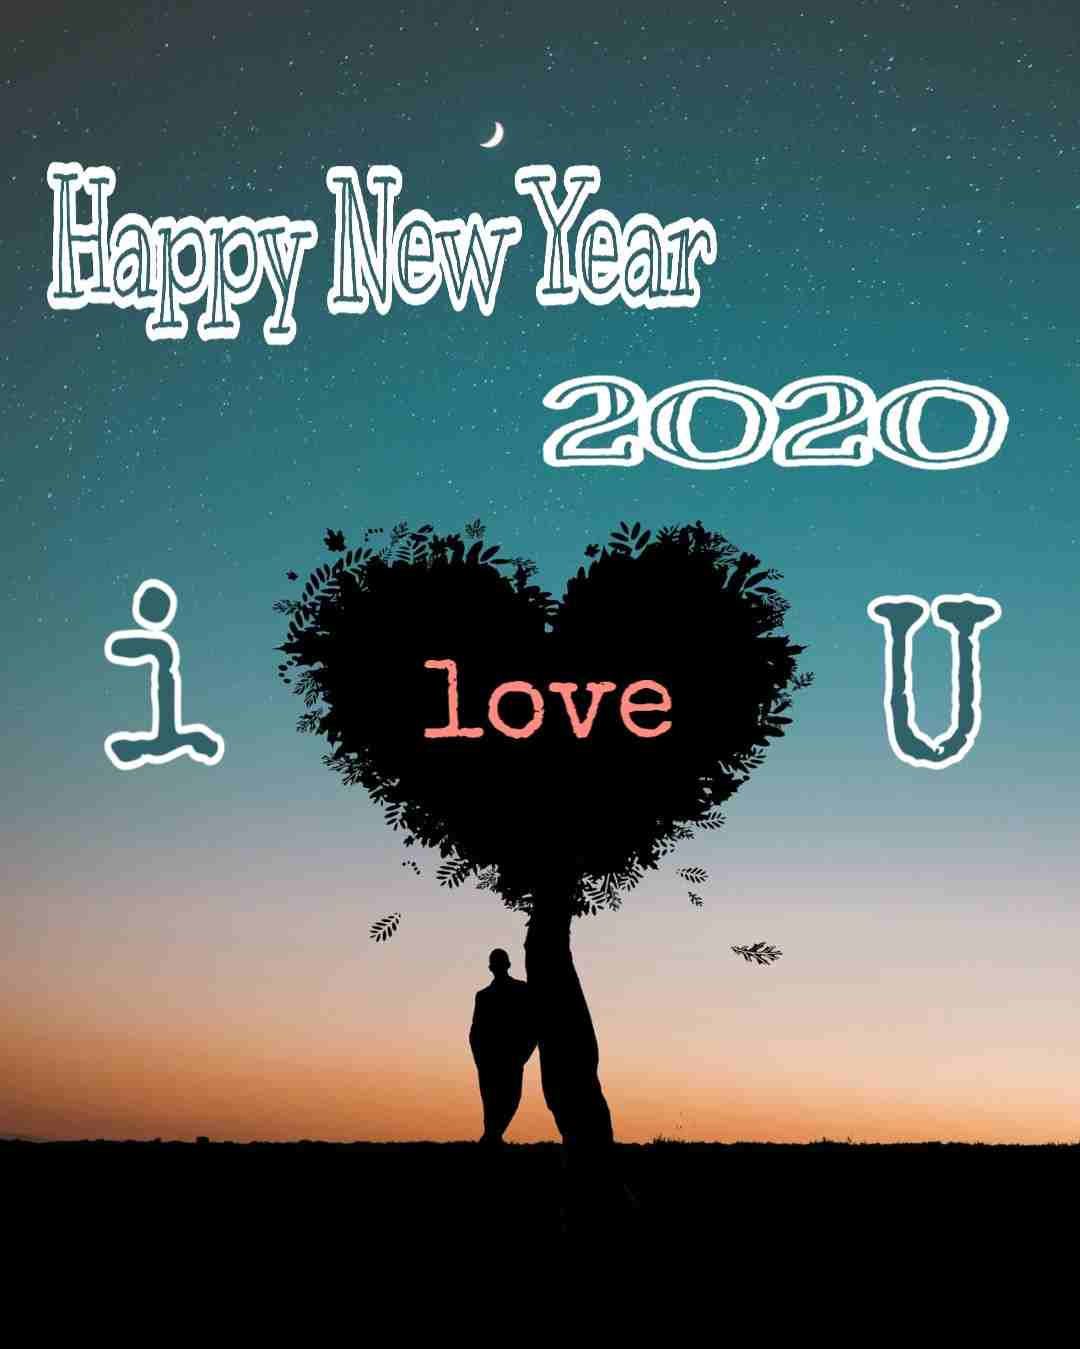 Happy New Year 2020 Image with I love you moon couple